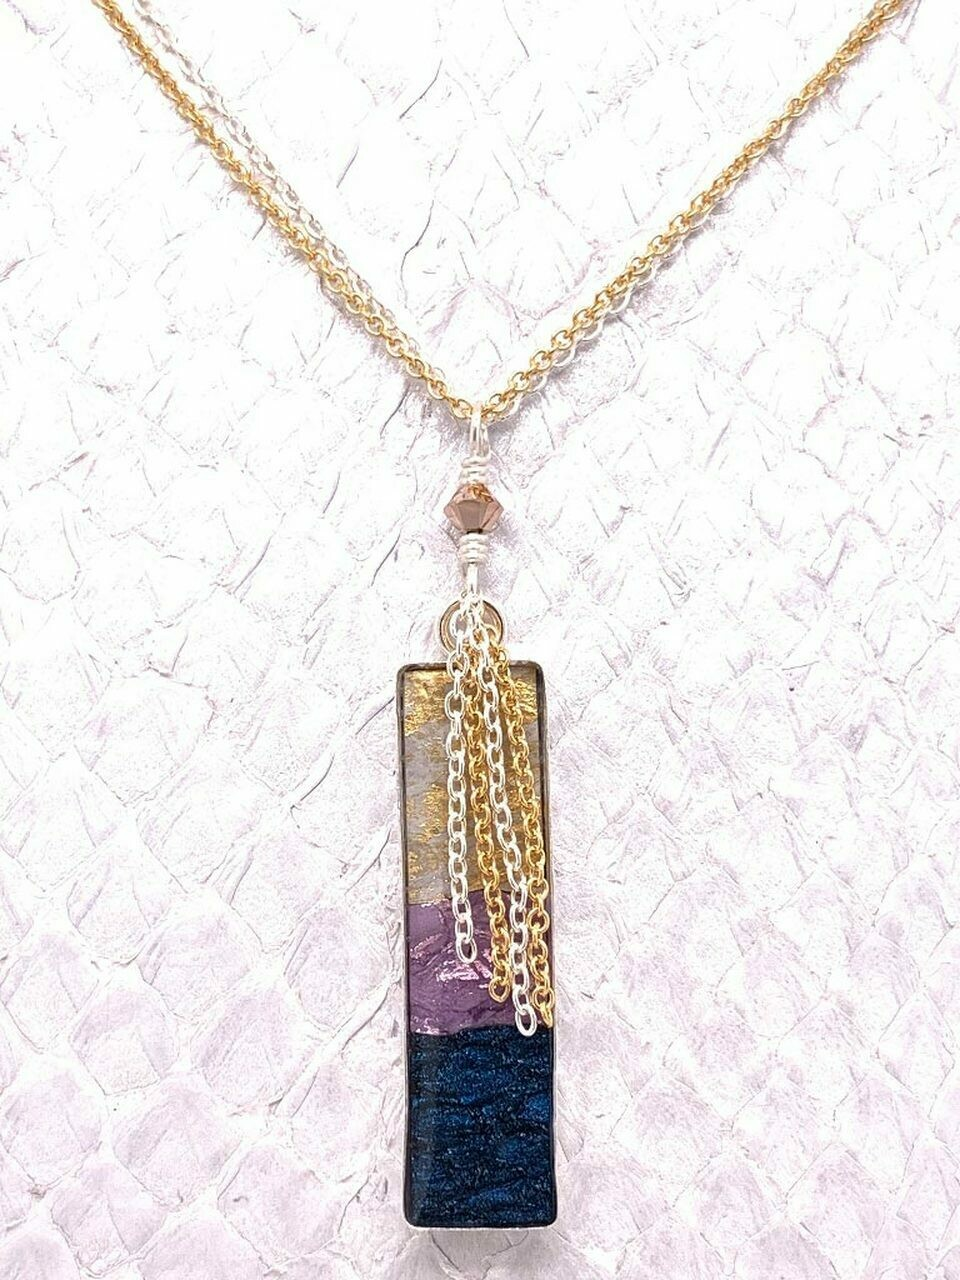 MJ Waterfall Necklace - mixed